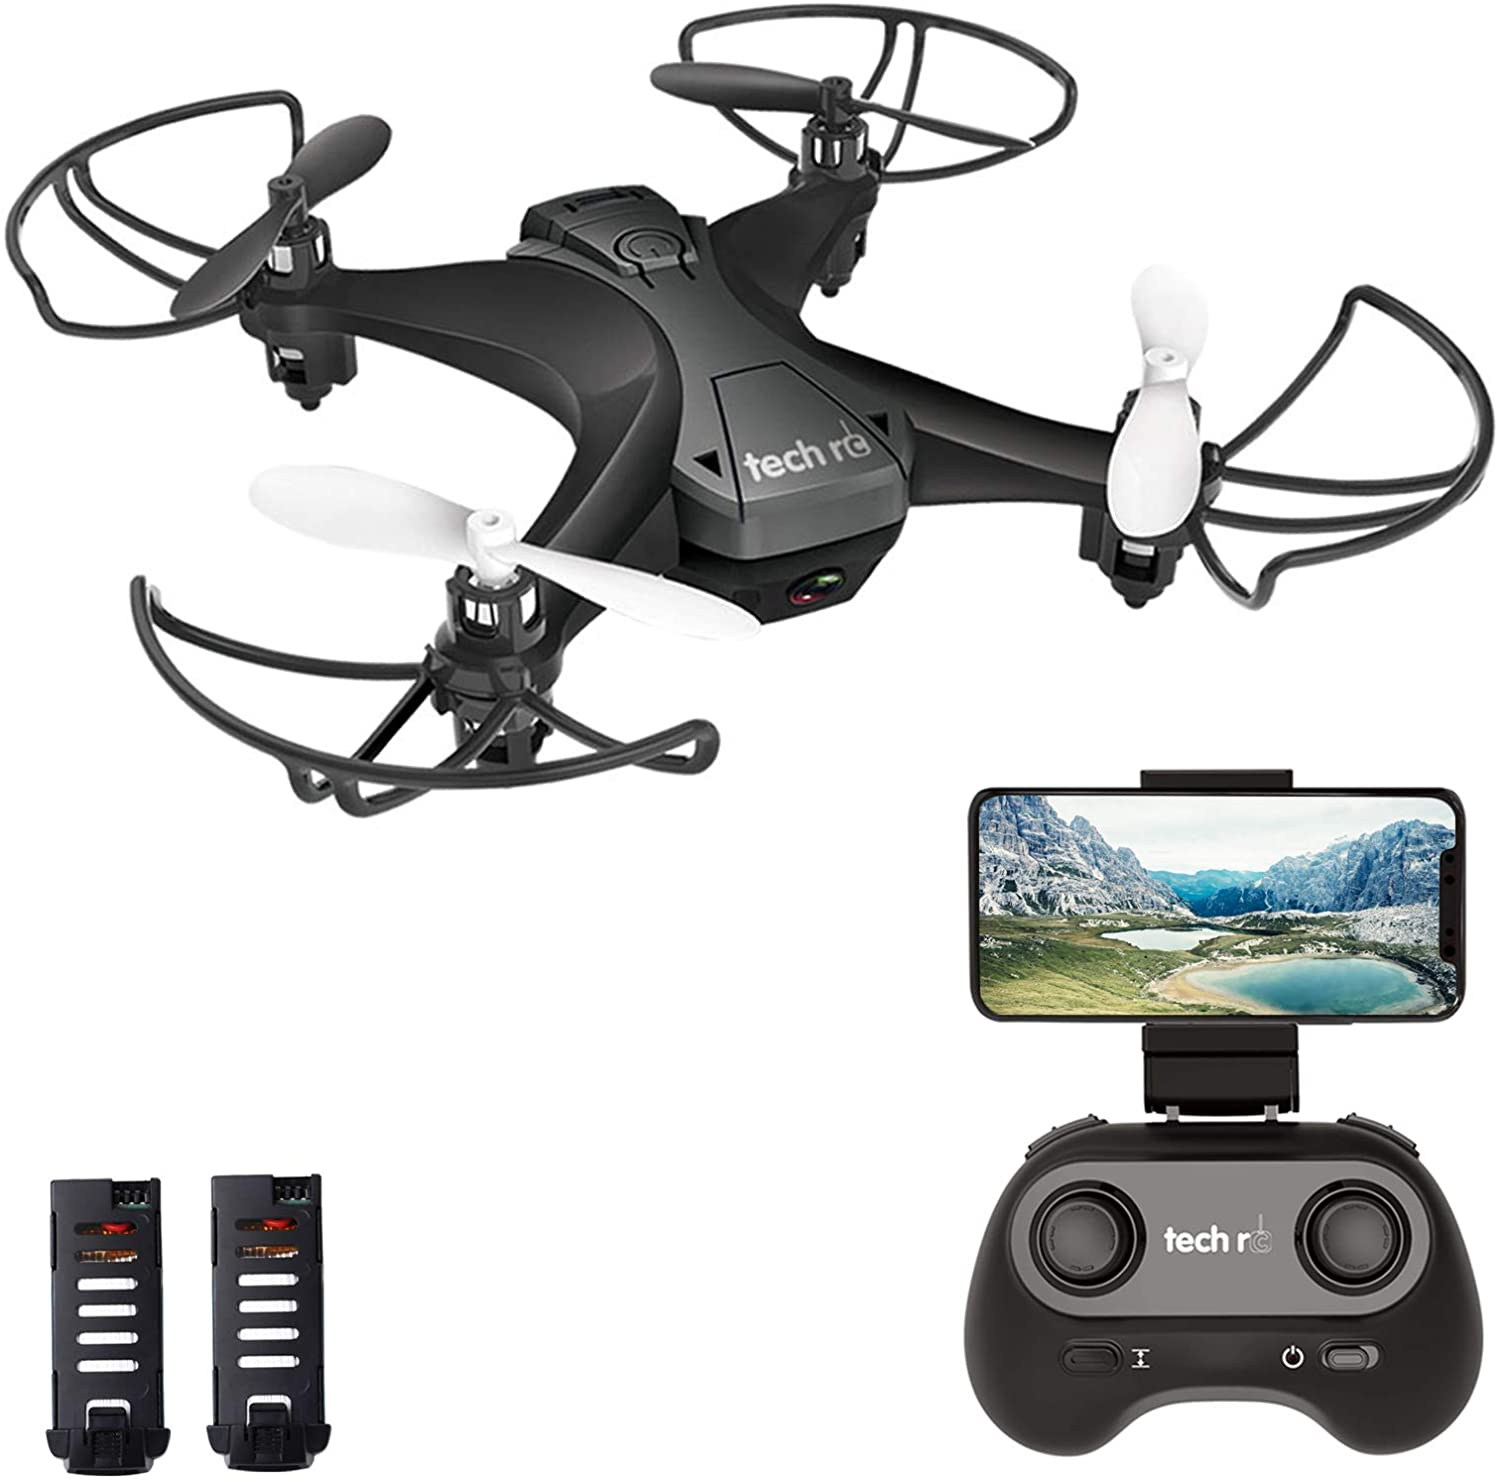 Tech Rc Mini Drone Without Camera